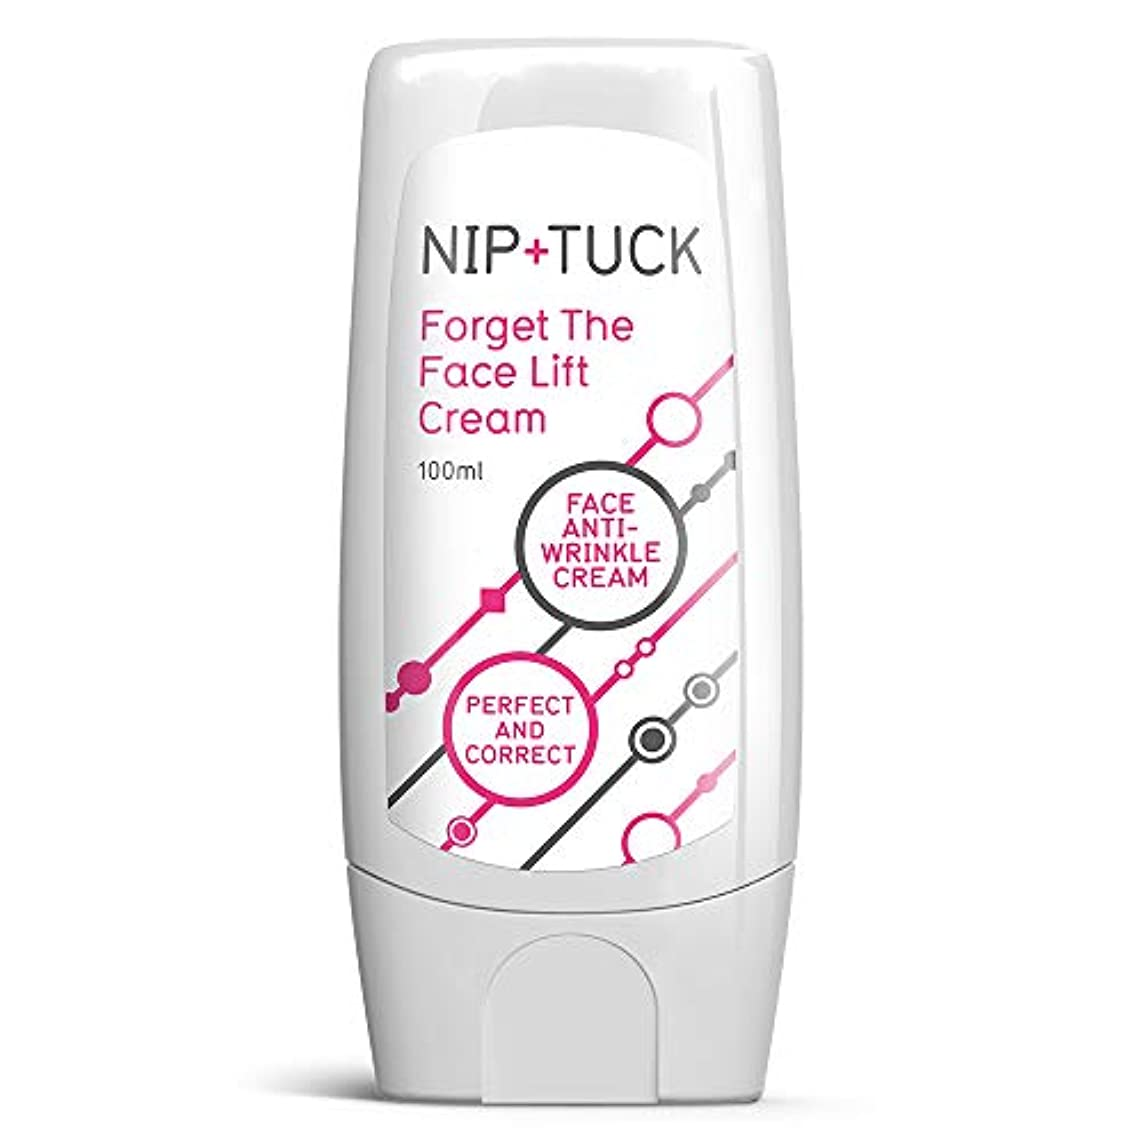 道路告白する構想するNIP & TUCK FORGET THE FACELIFT CREAM Nippu& takku wa, anchikurinkufeisu& anchirinkurukurīmufāmu& 若く見える肌を